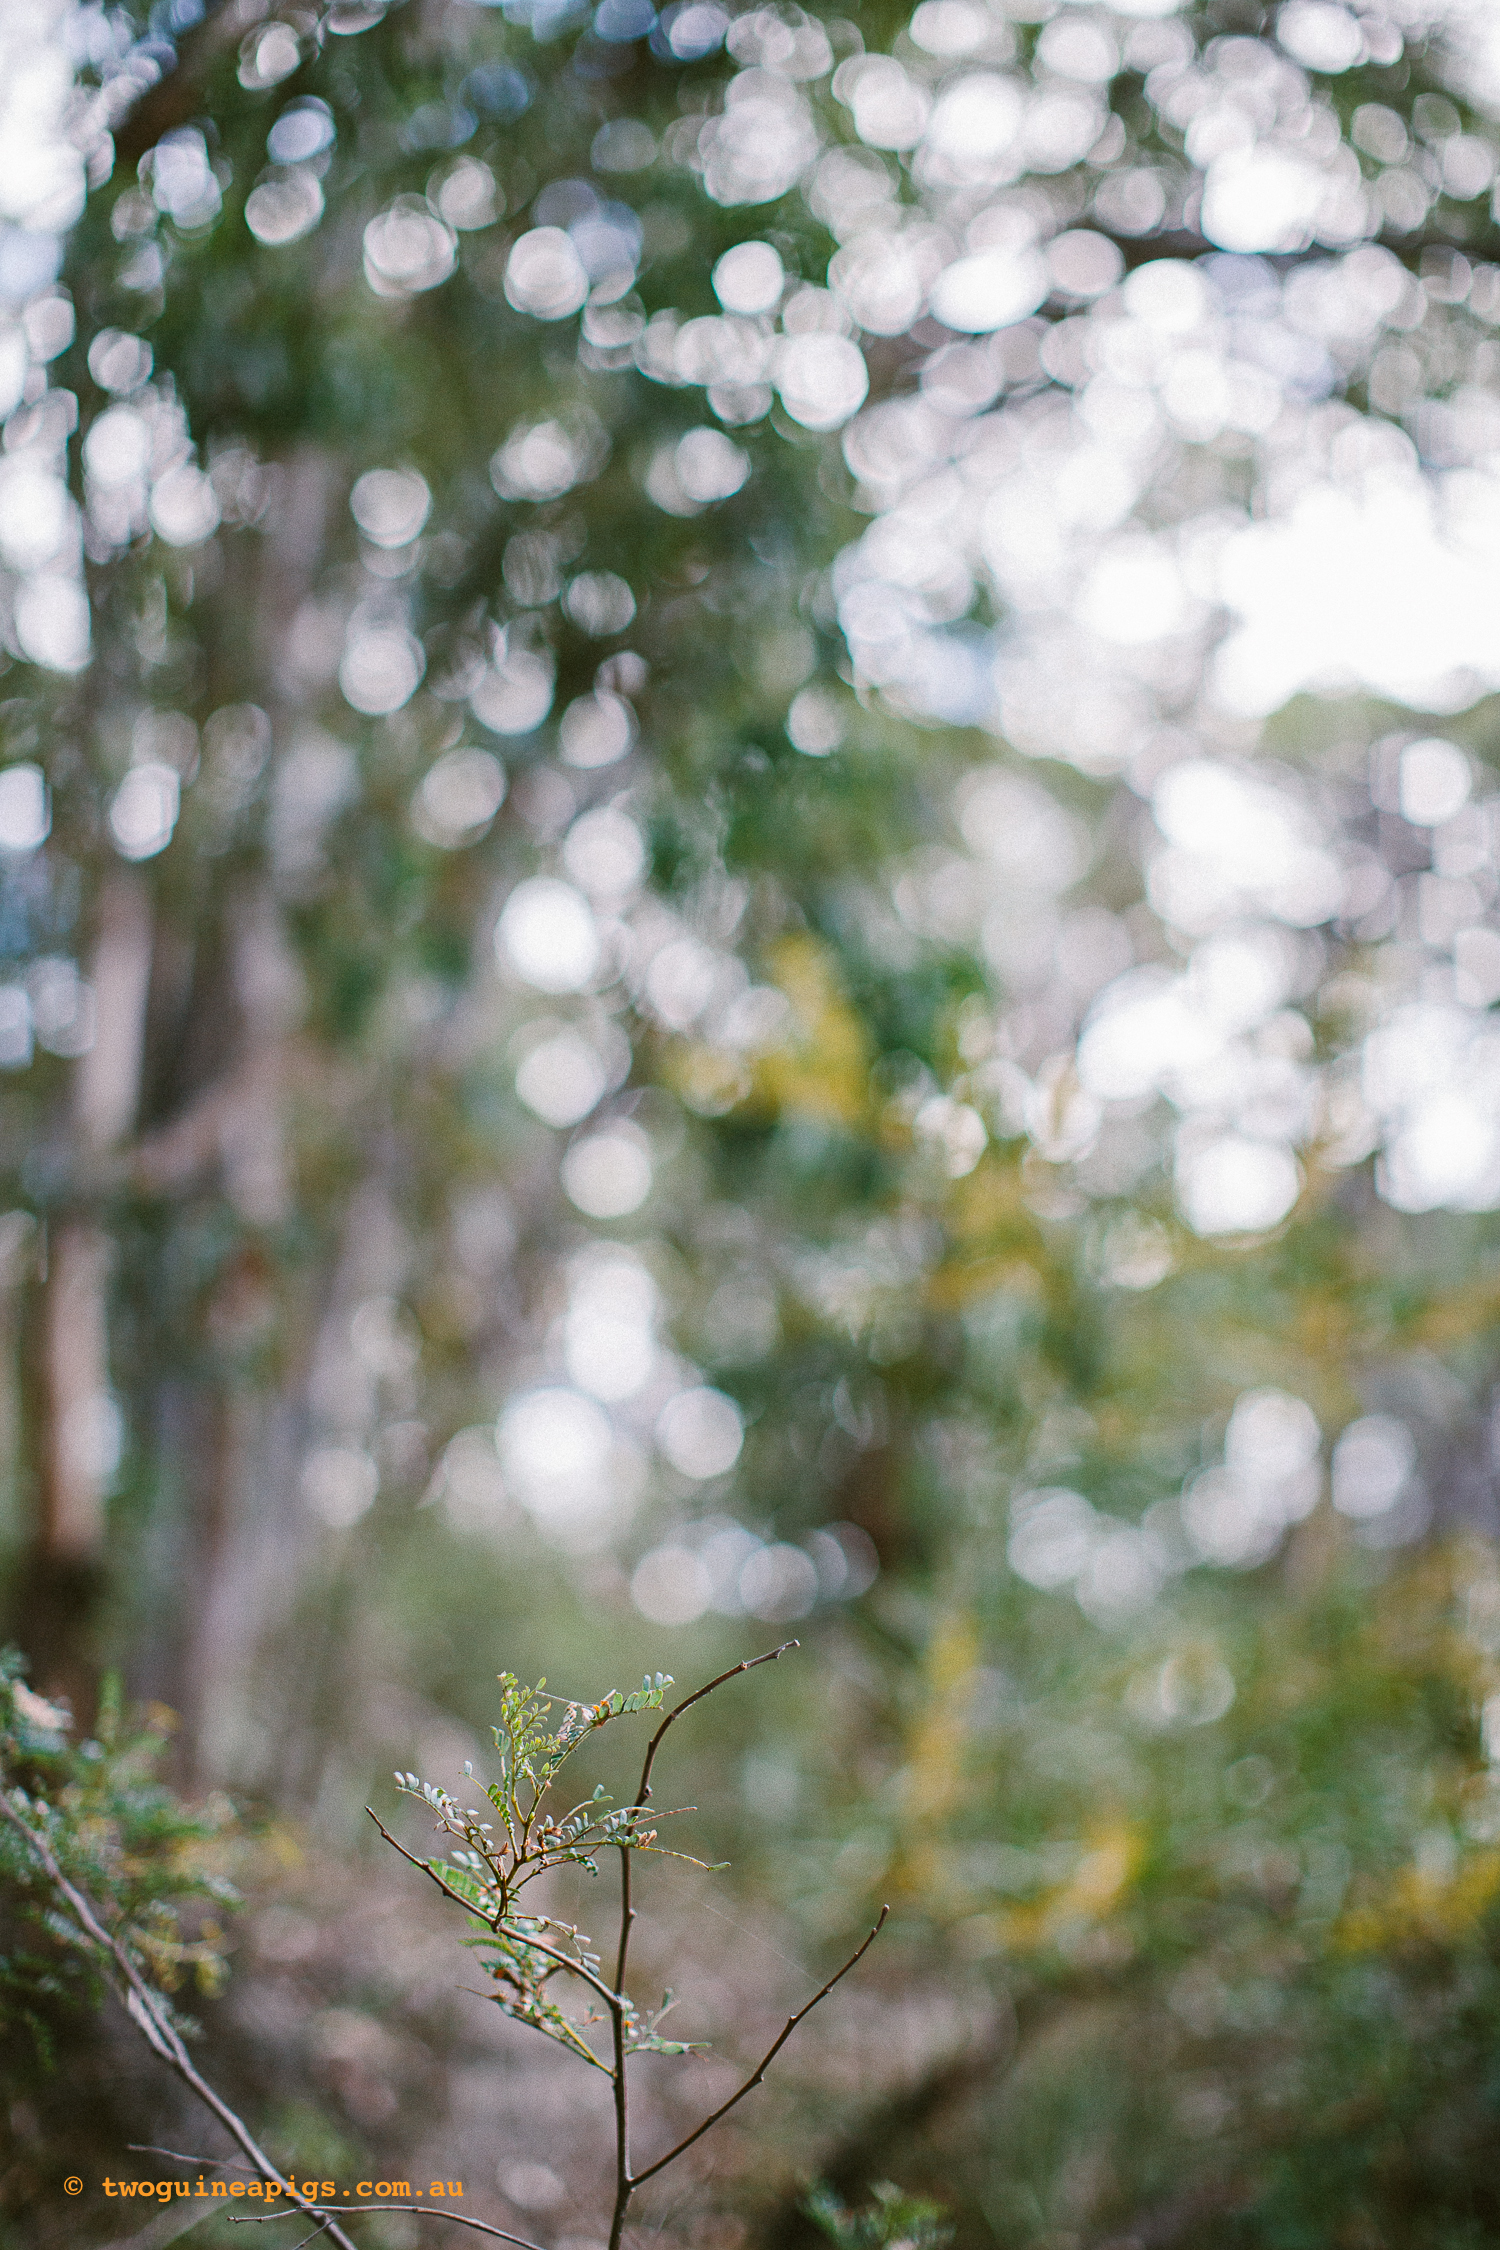 twoguineapigs_pet_photography_berry_island_reserve_wollstonecraft_location_scout_1500-29.jpg